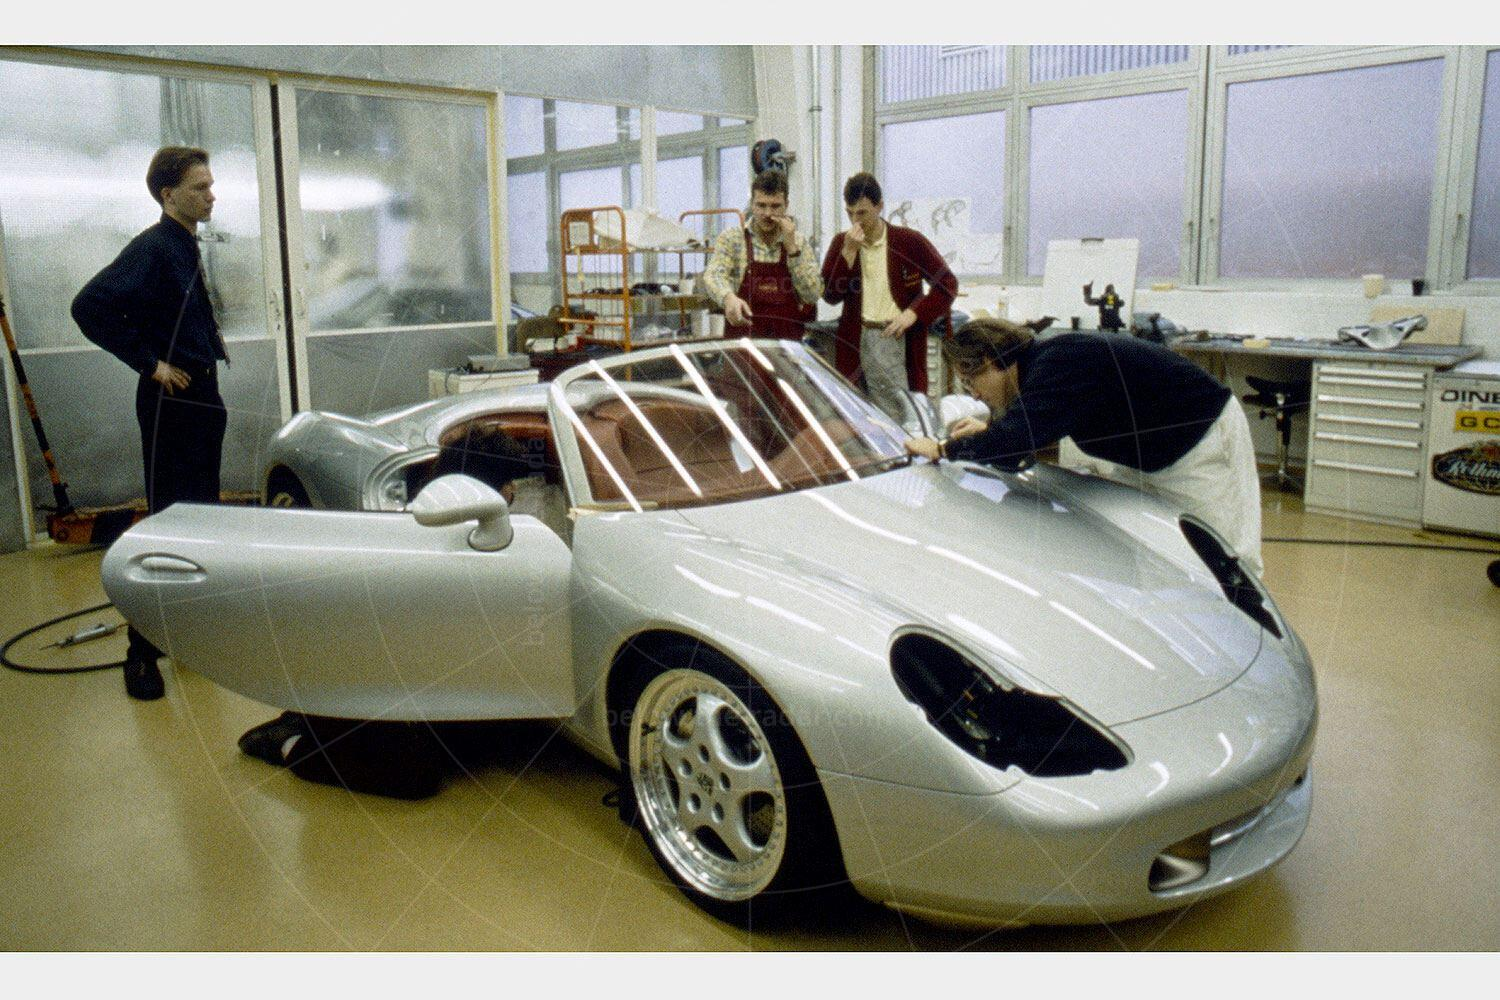 Porsche Boxster concept being built Pic: Porsche | Porsche Boxster concept being built